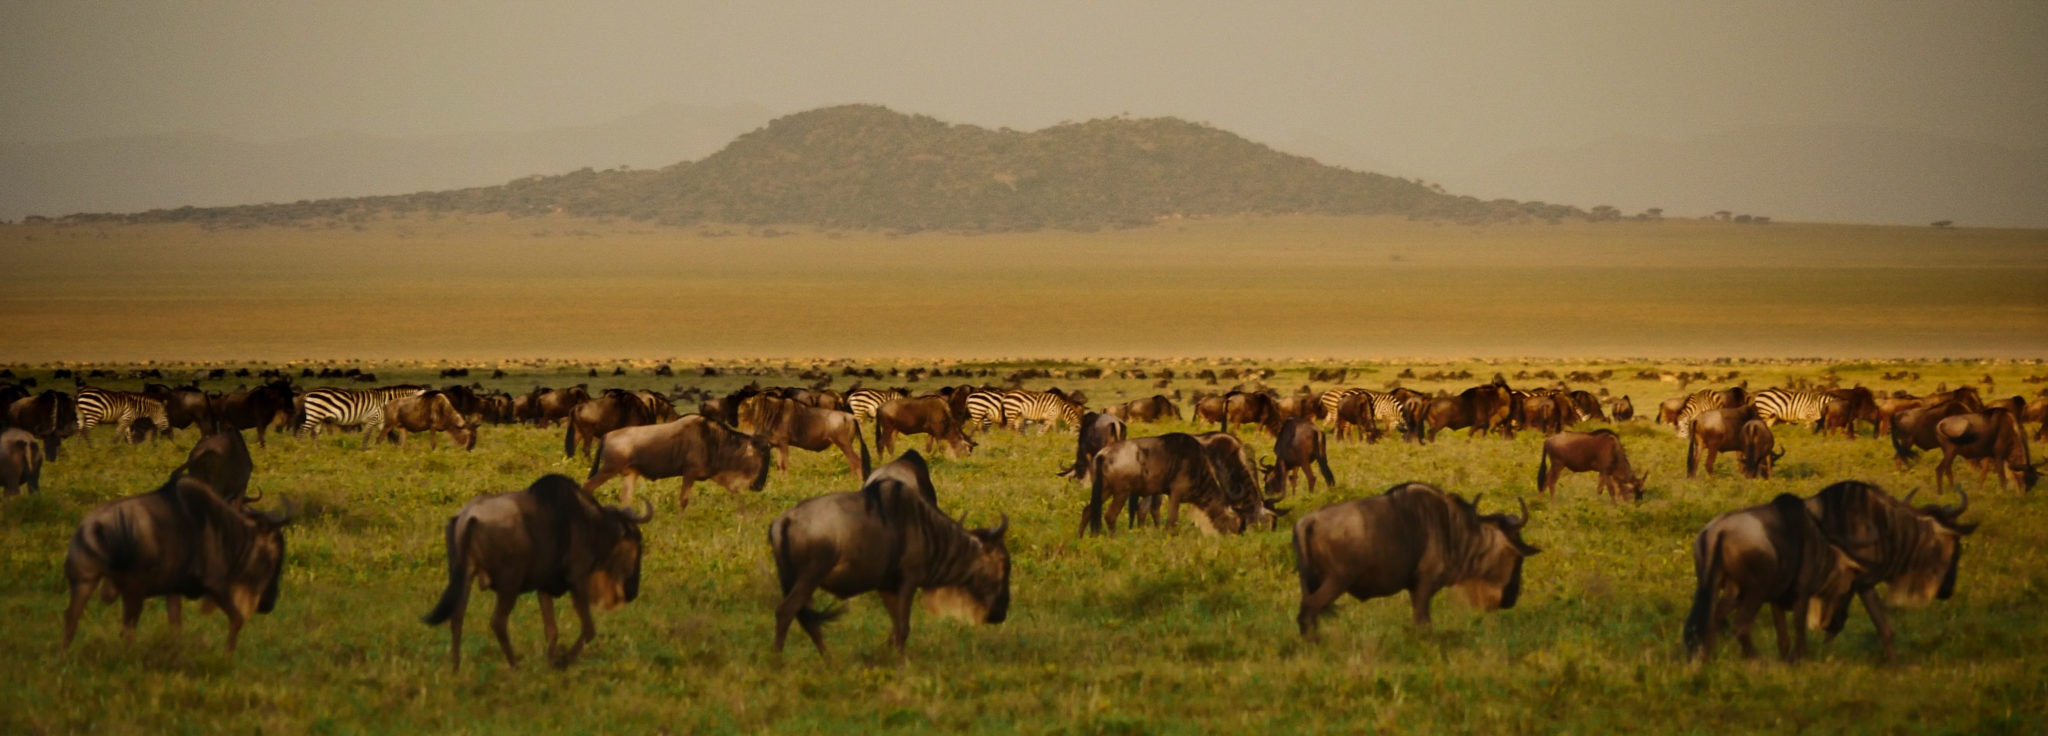 wildebeast migration tanzania naabi plains